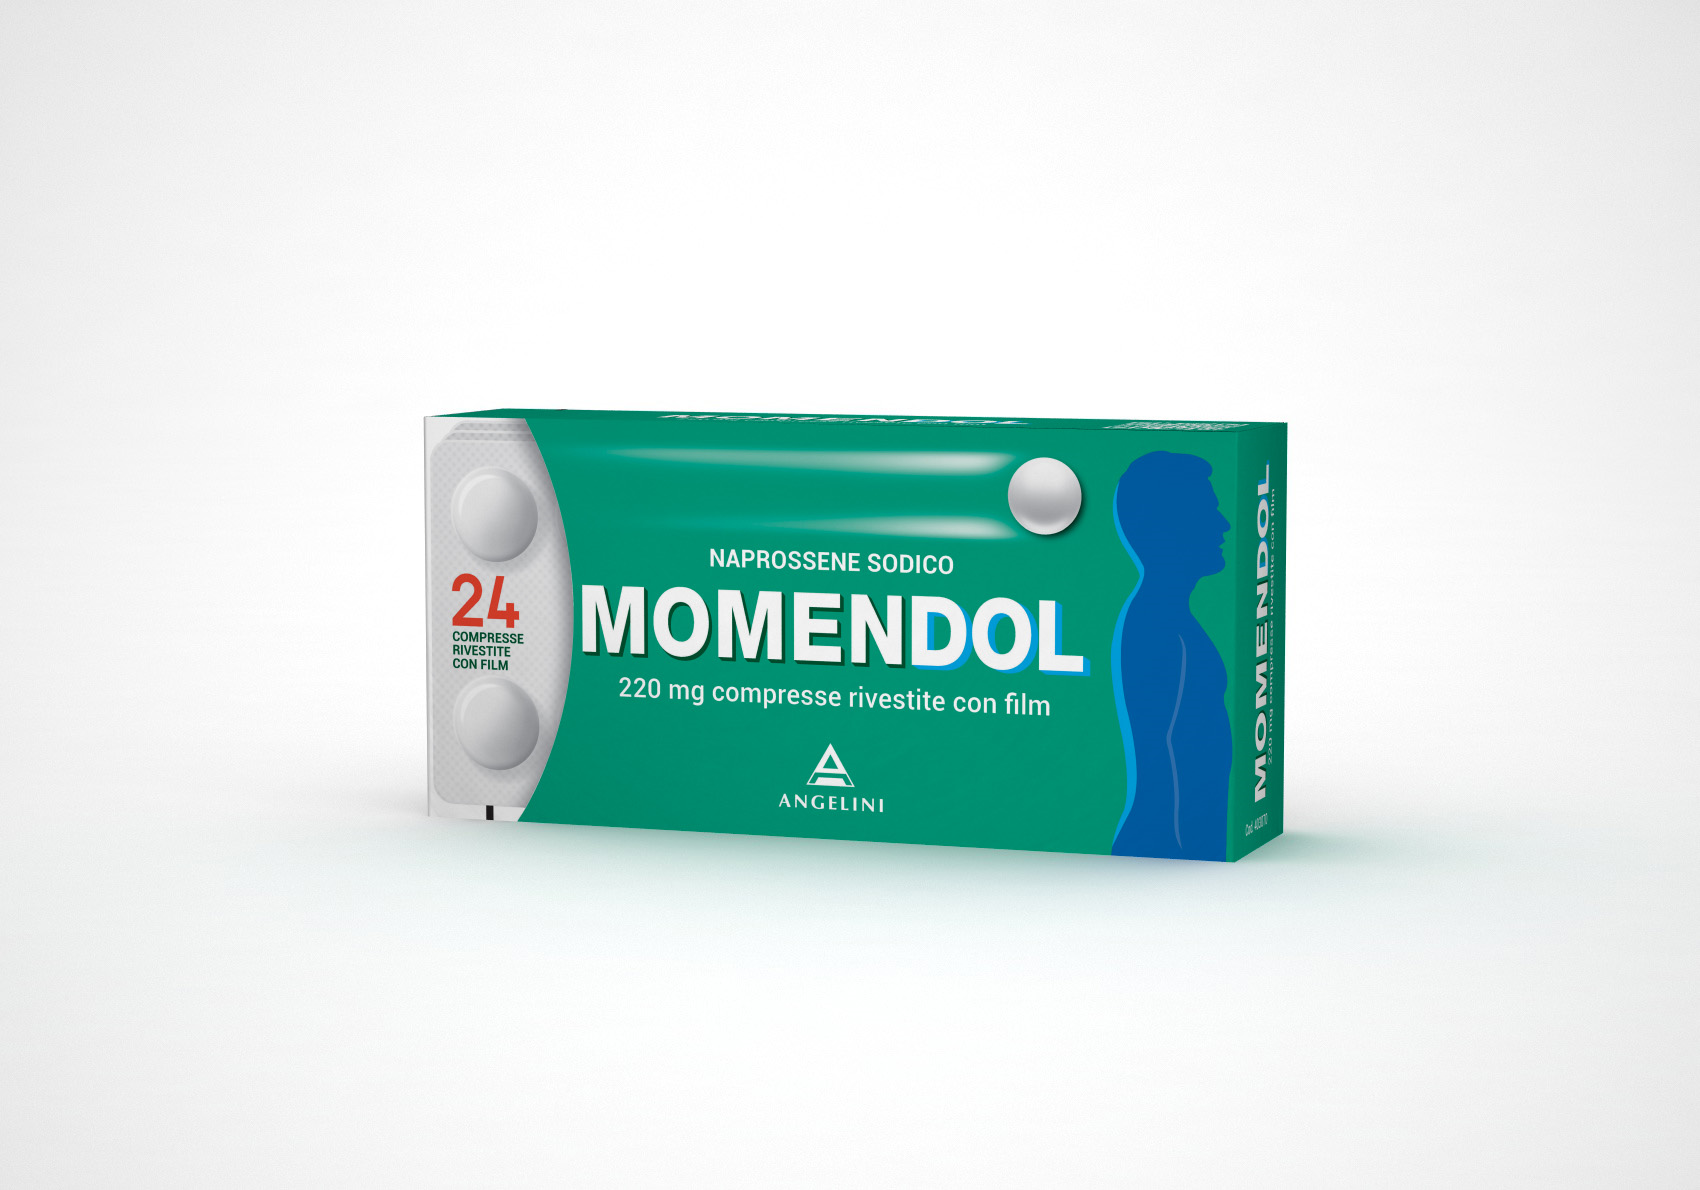 MOMEN DOL 220mg naprossene sodico 24 compresse - Farmapage.it